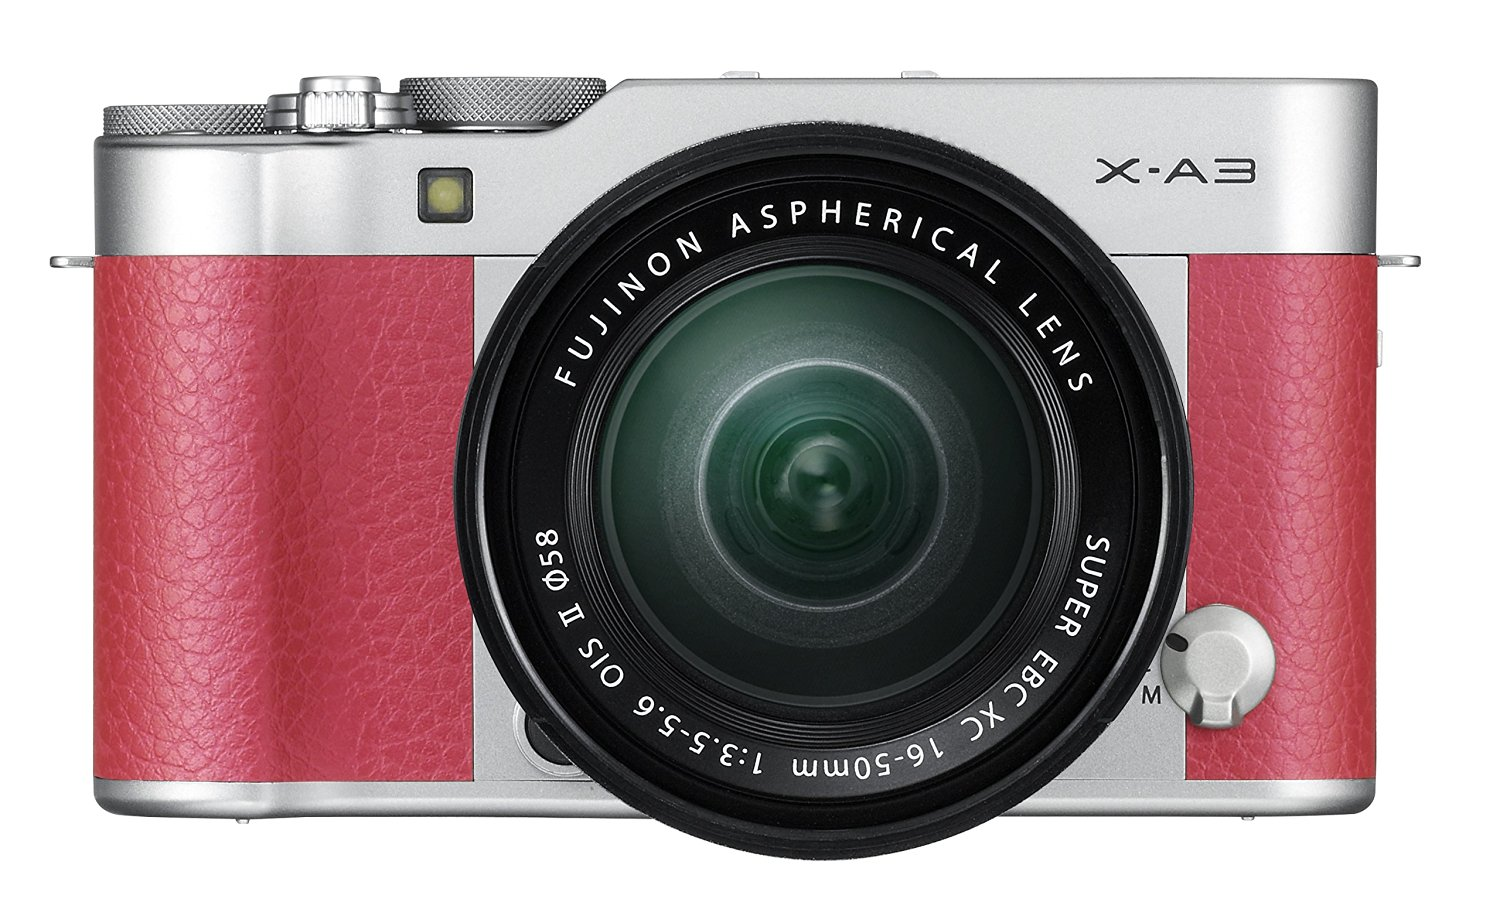 Fujifilm X-A3 with XC 16-50mm lens kit pink